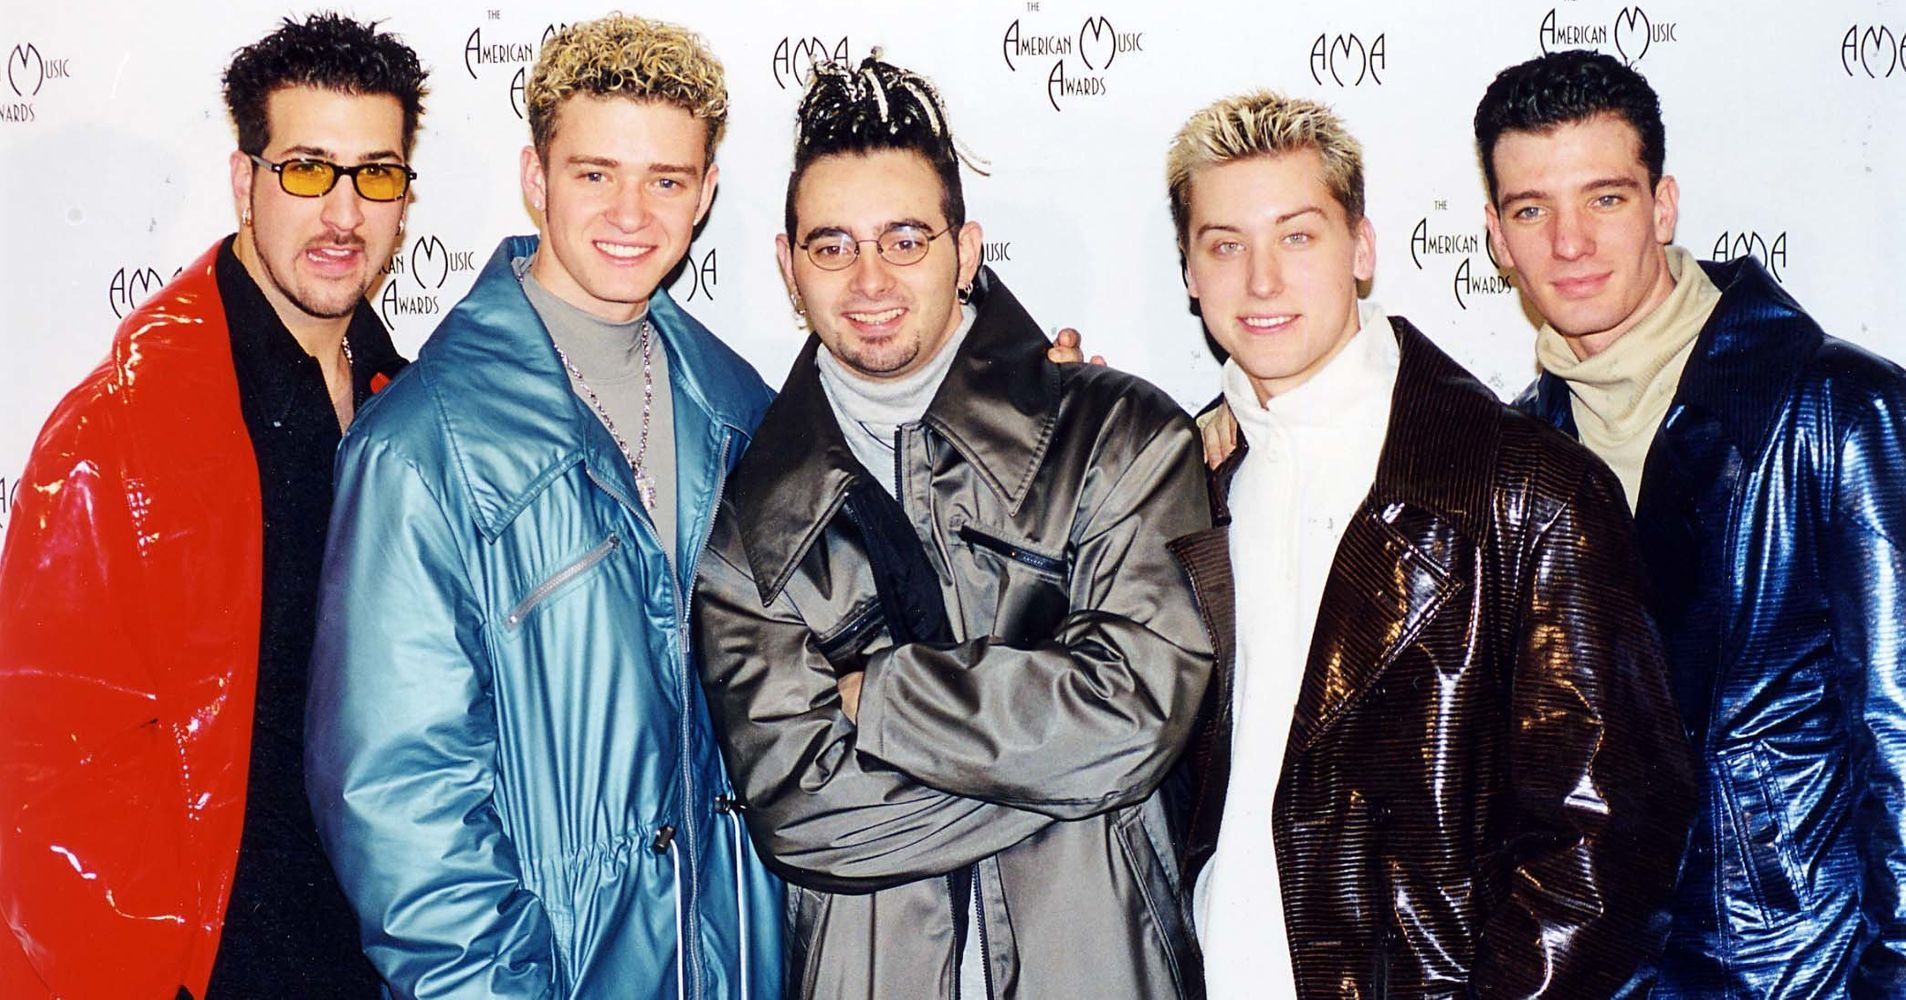 All Of Your Favorite 90s Boy Bands Are Back With An Epic